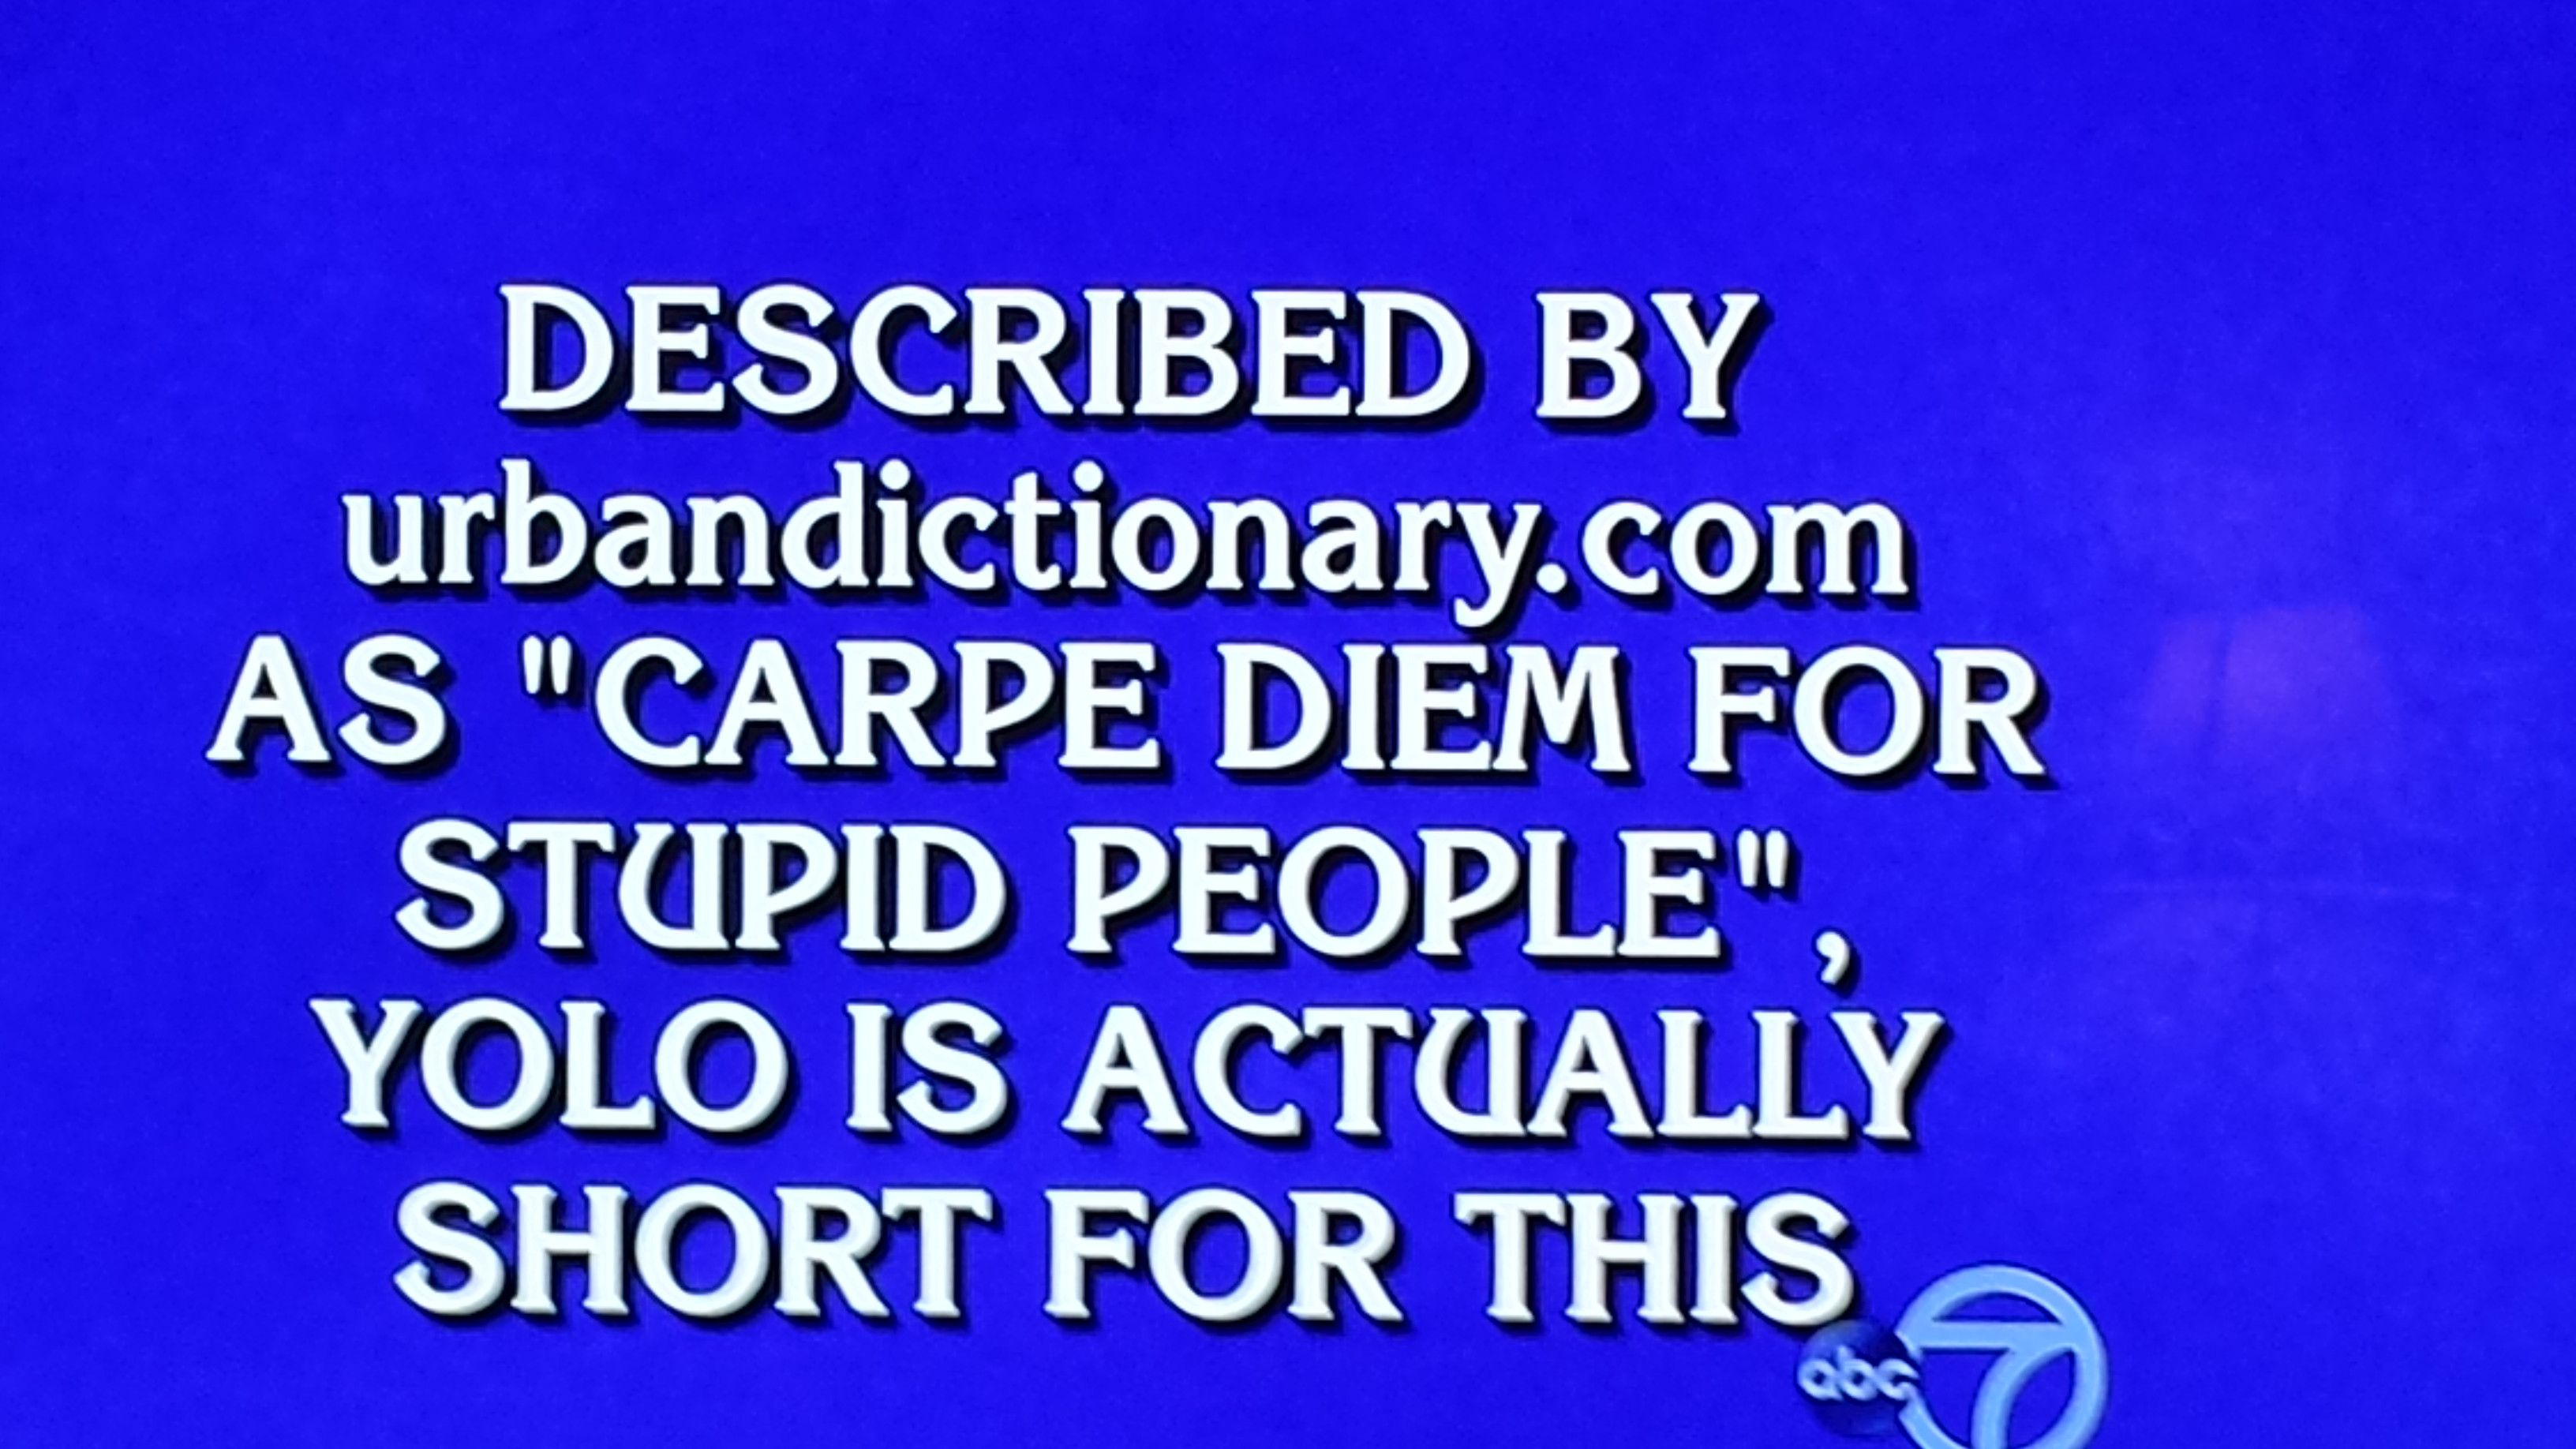 Jeopardy question describing YOLO is the carpe diem for stupid people.